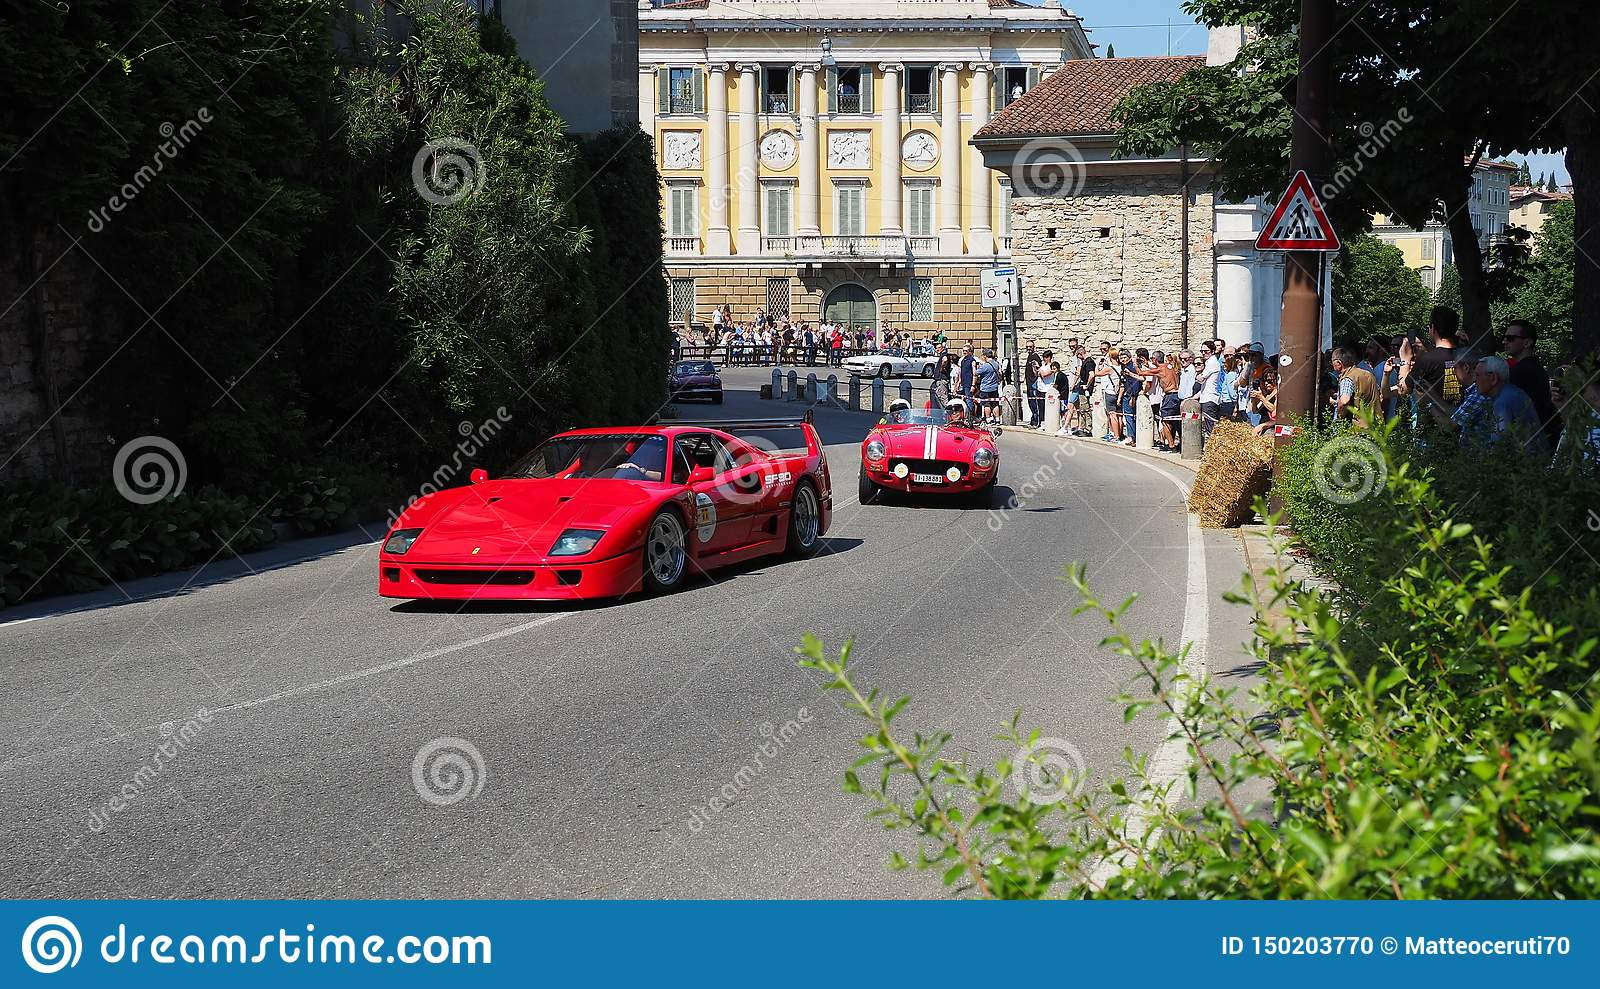 Bergamo, Italy. Historical Gran Prix. Parade of historic cars along the route of the Venetian walls that surround the old city